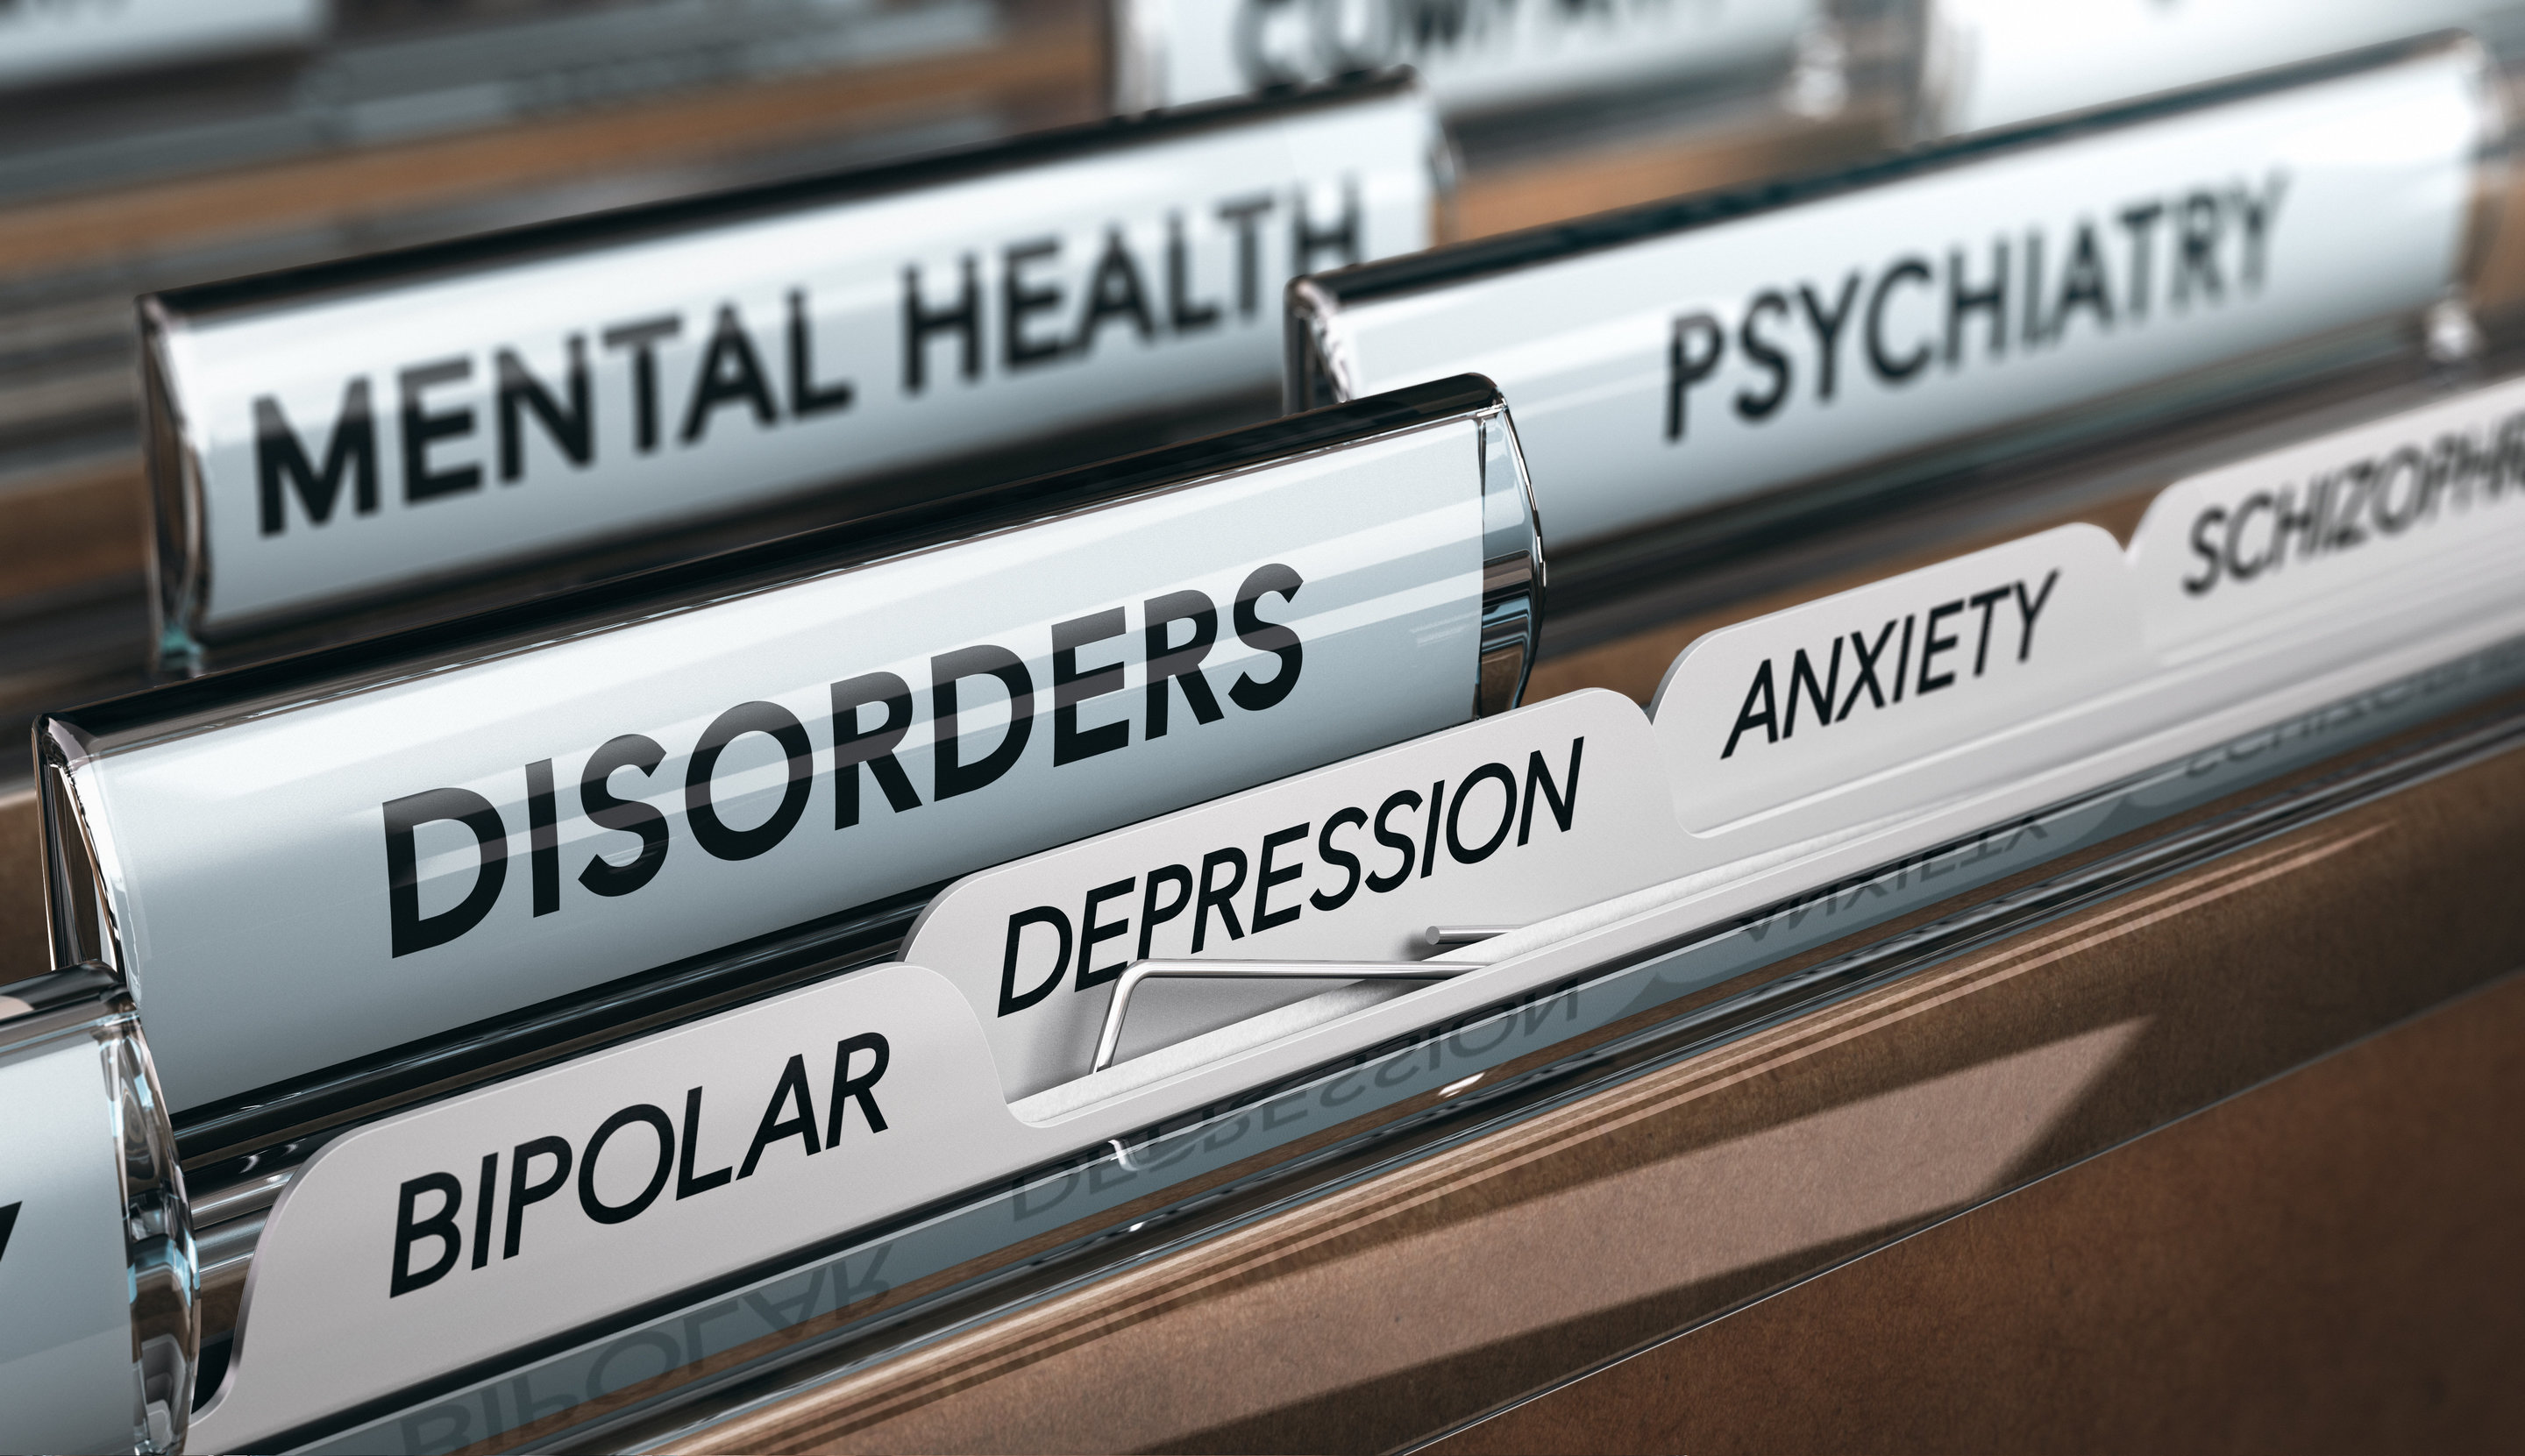 Diagnostic Labels For Mental Health Conditions Are Not